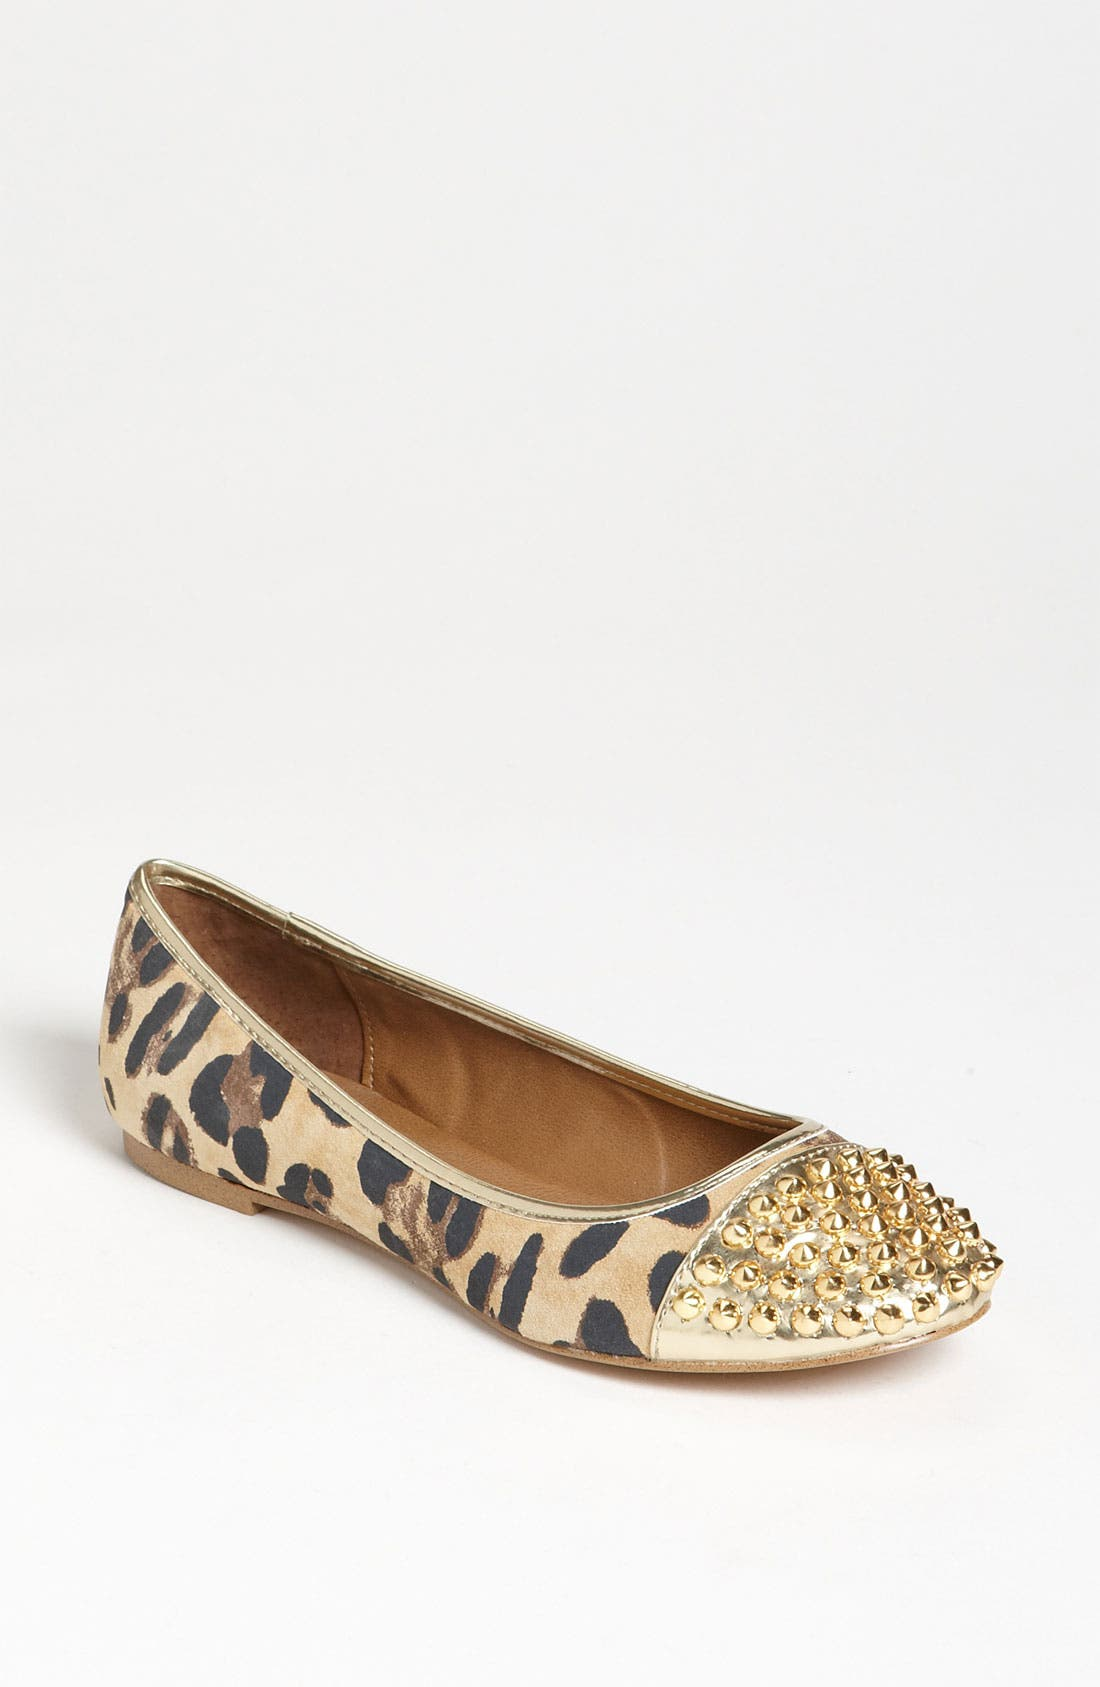 Alternate Image 1 Selected - Steve Madden 'Kimmmie' Flat